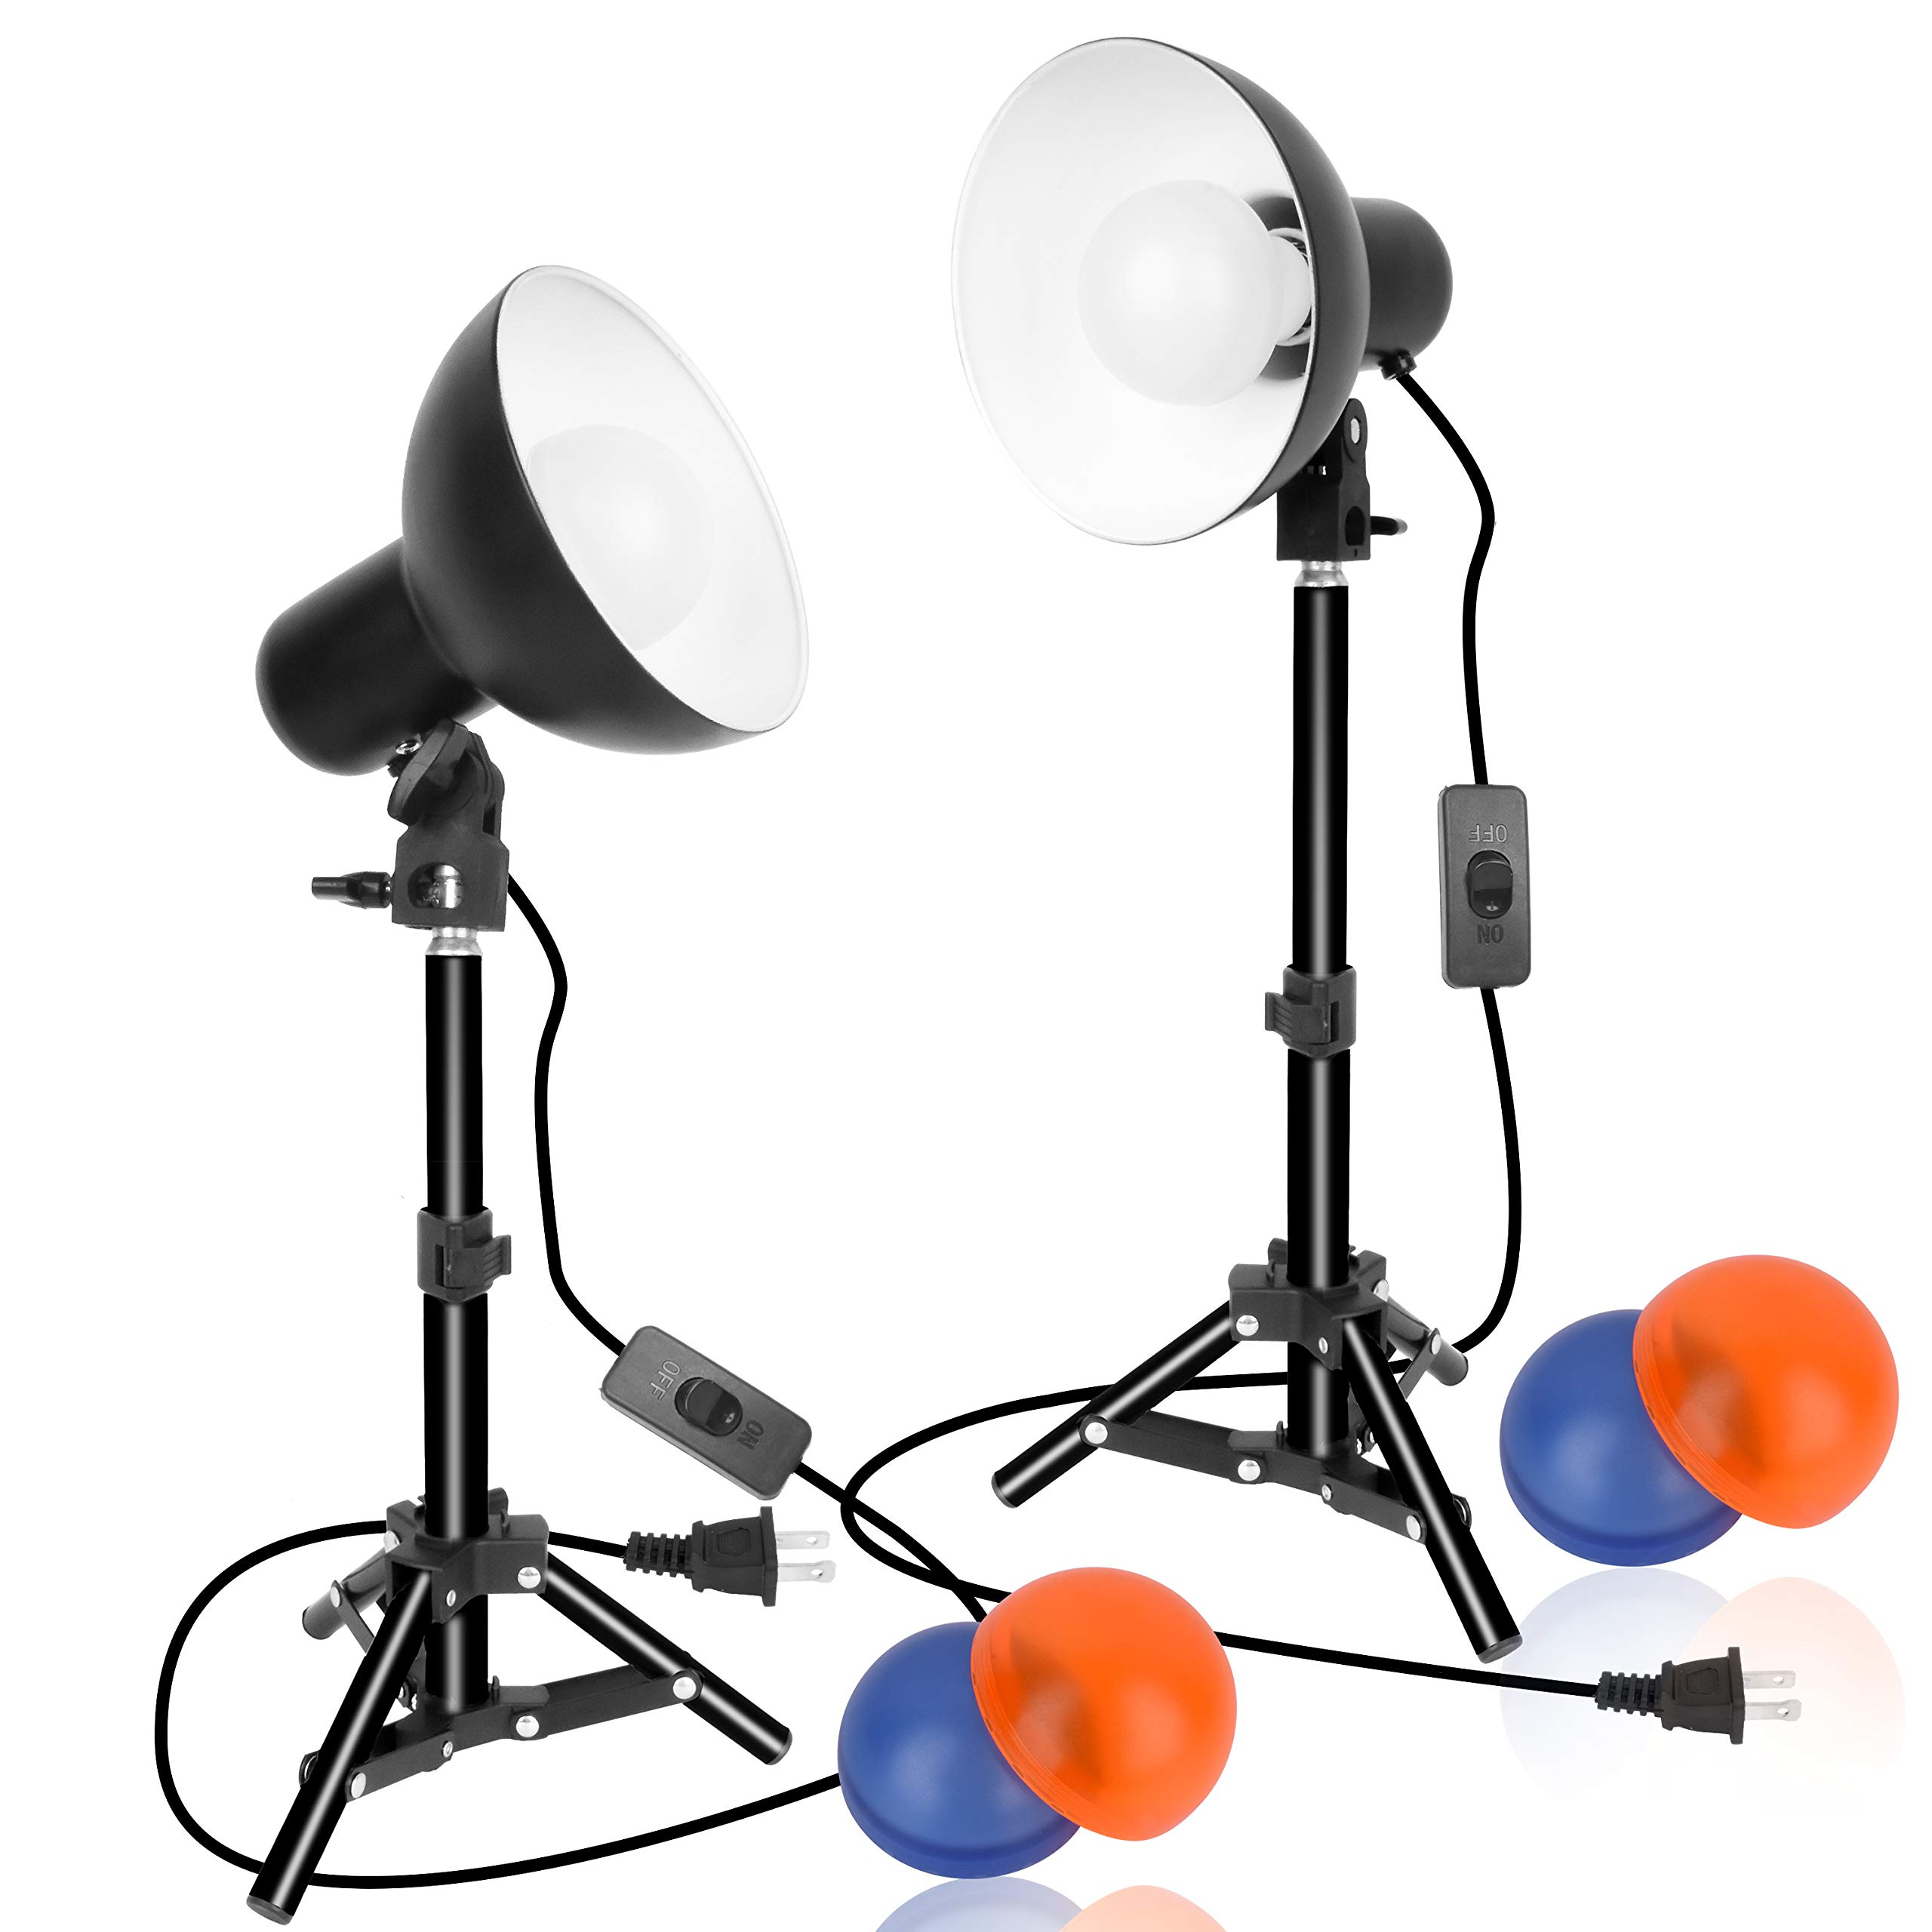 Emart 2 x 15W Table Top Photography Studio LED Lighting Kit with Light Stand Tripod by EMART